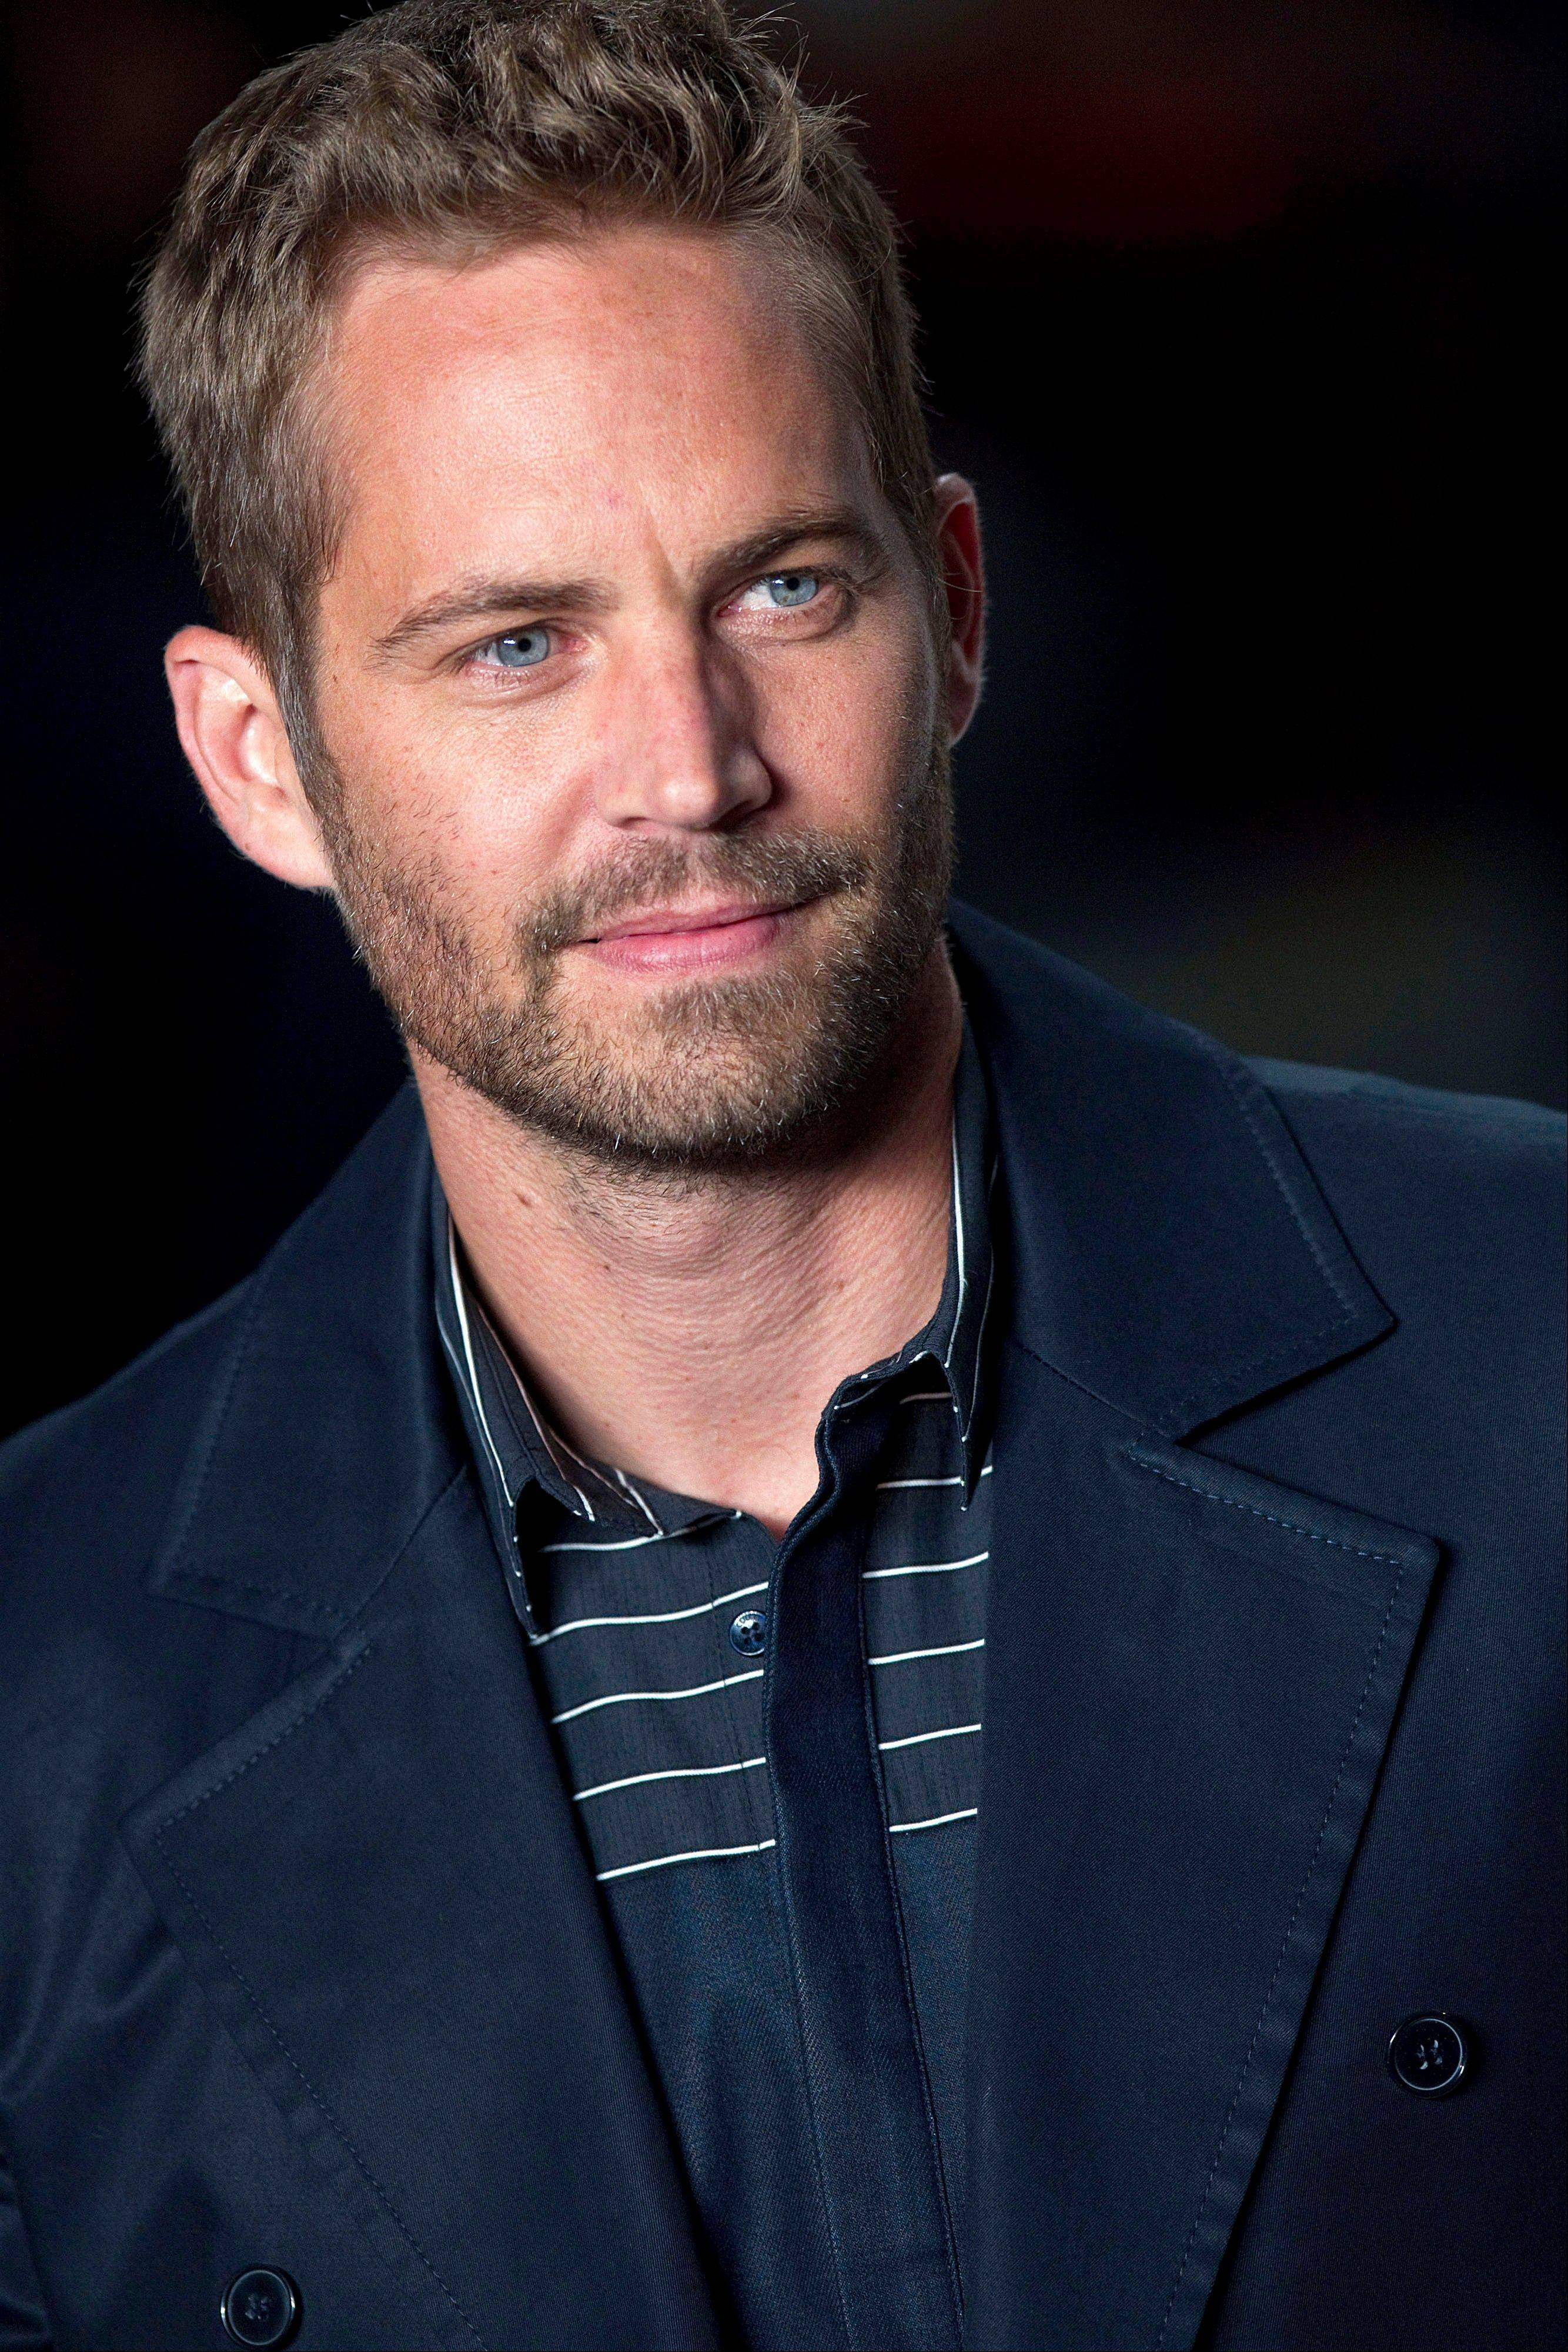 An estimated 1,000-car road rally in tribute to the �Fast & Furious� actor Paul Walker made its way from Arlington Heights to Interstate 90 heading toward Chicago, according to Prospect Heights police.